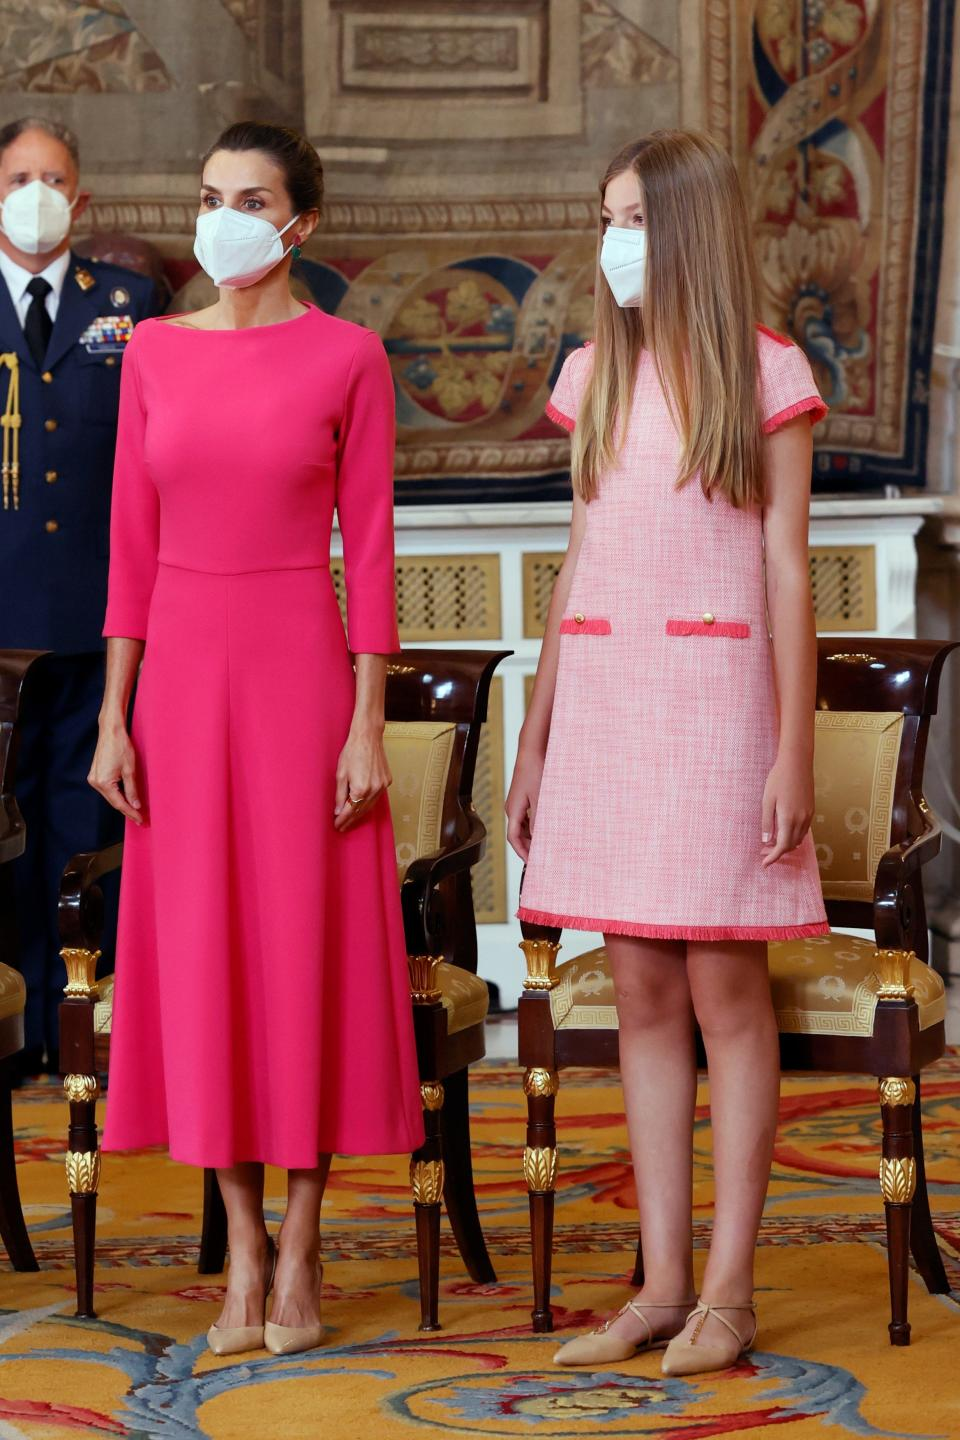 MADRID, SPAIN - JUNE 18: Queen Letizia of Spain and Princess Sofia attend the